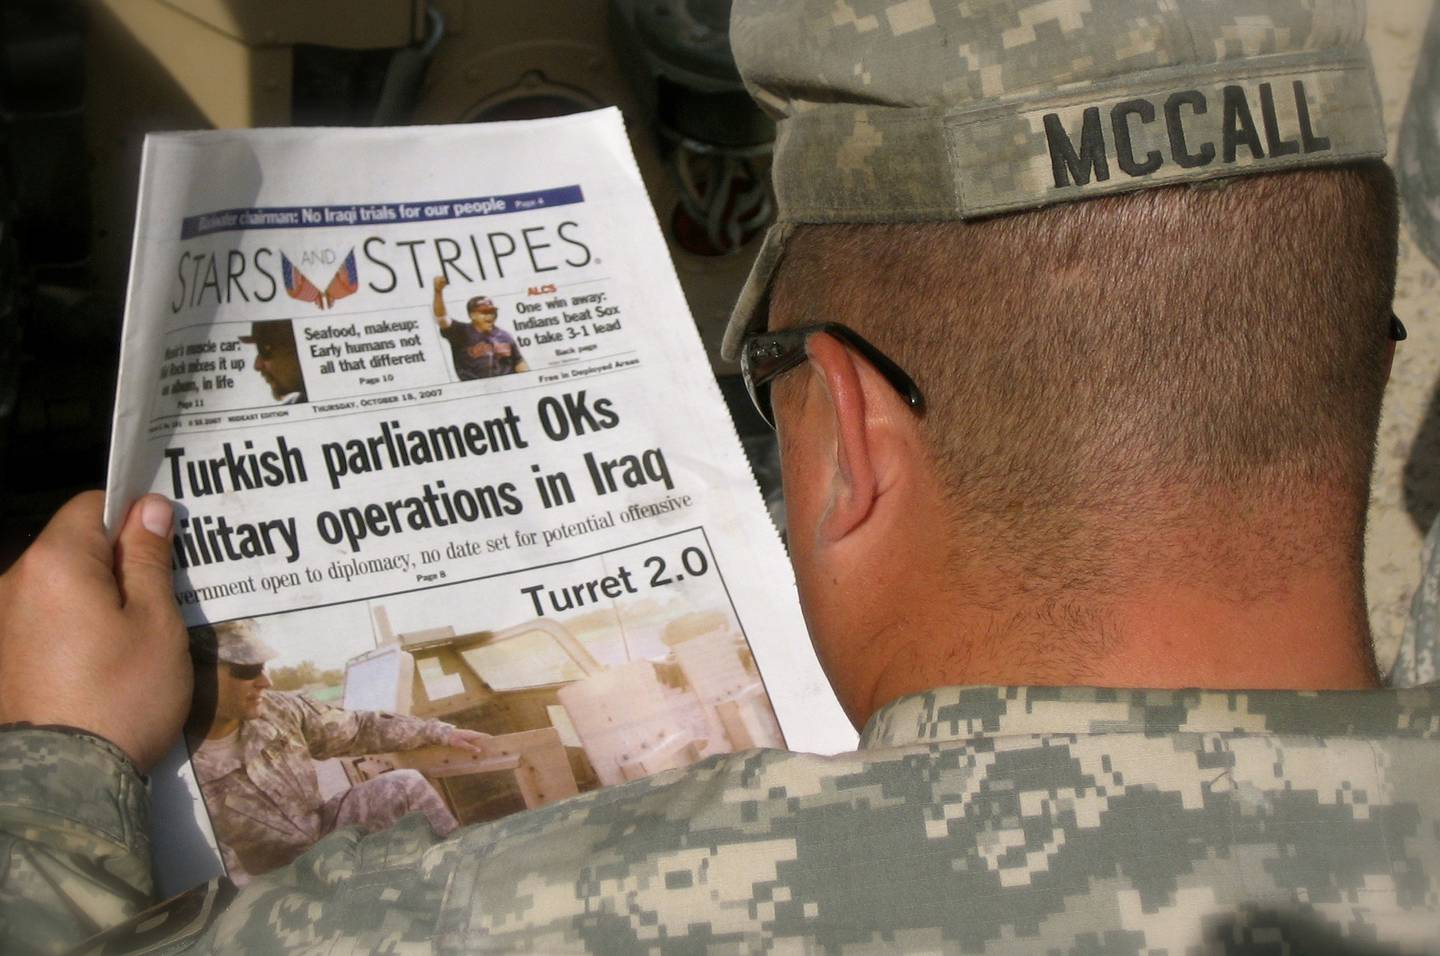 An Army MP reads an edition of the Stars and Stripes newspaper while in the Green Zone, Baghdad, Oct. 18, 2007.